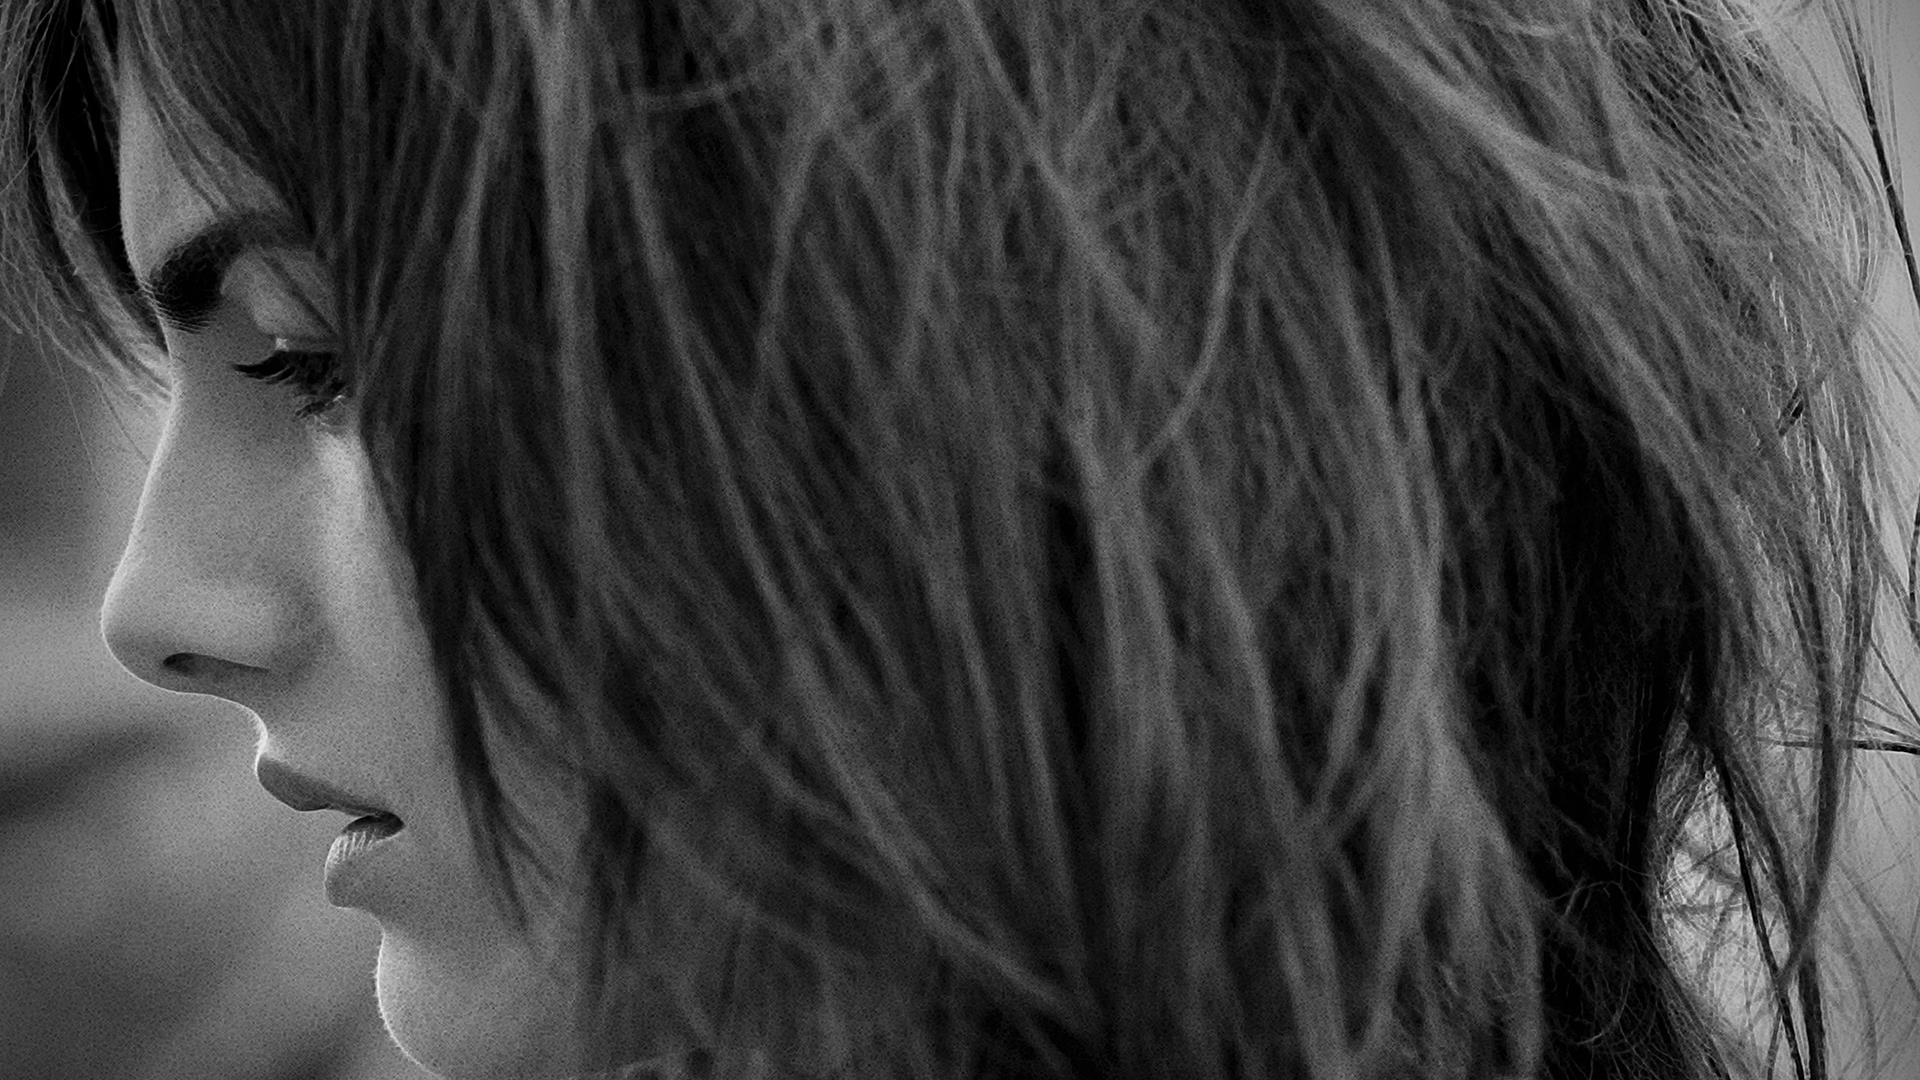 Camilla Belle Black N White Side Sad Face Closeup Wallpaper 1920x1080